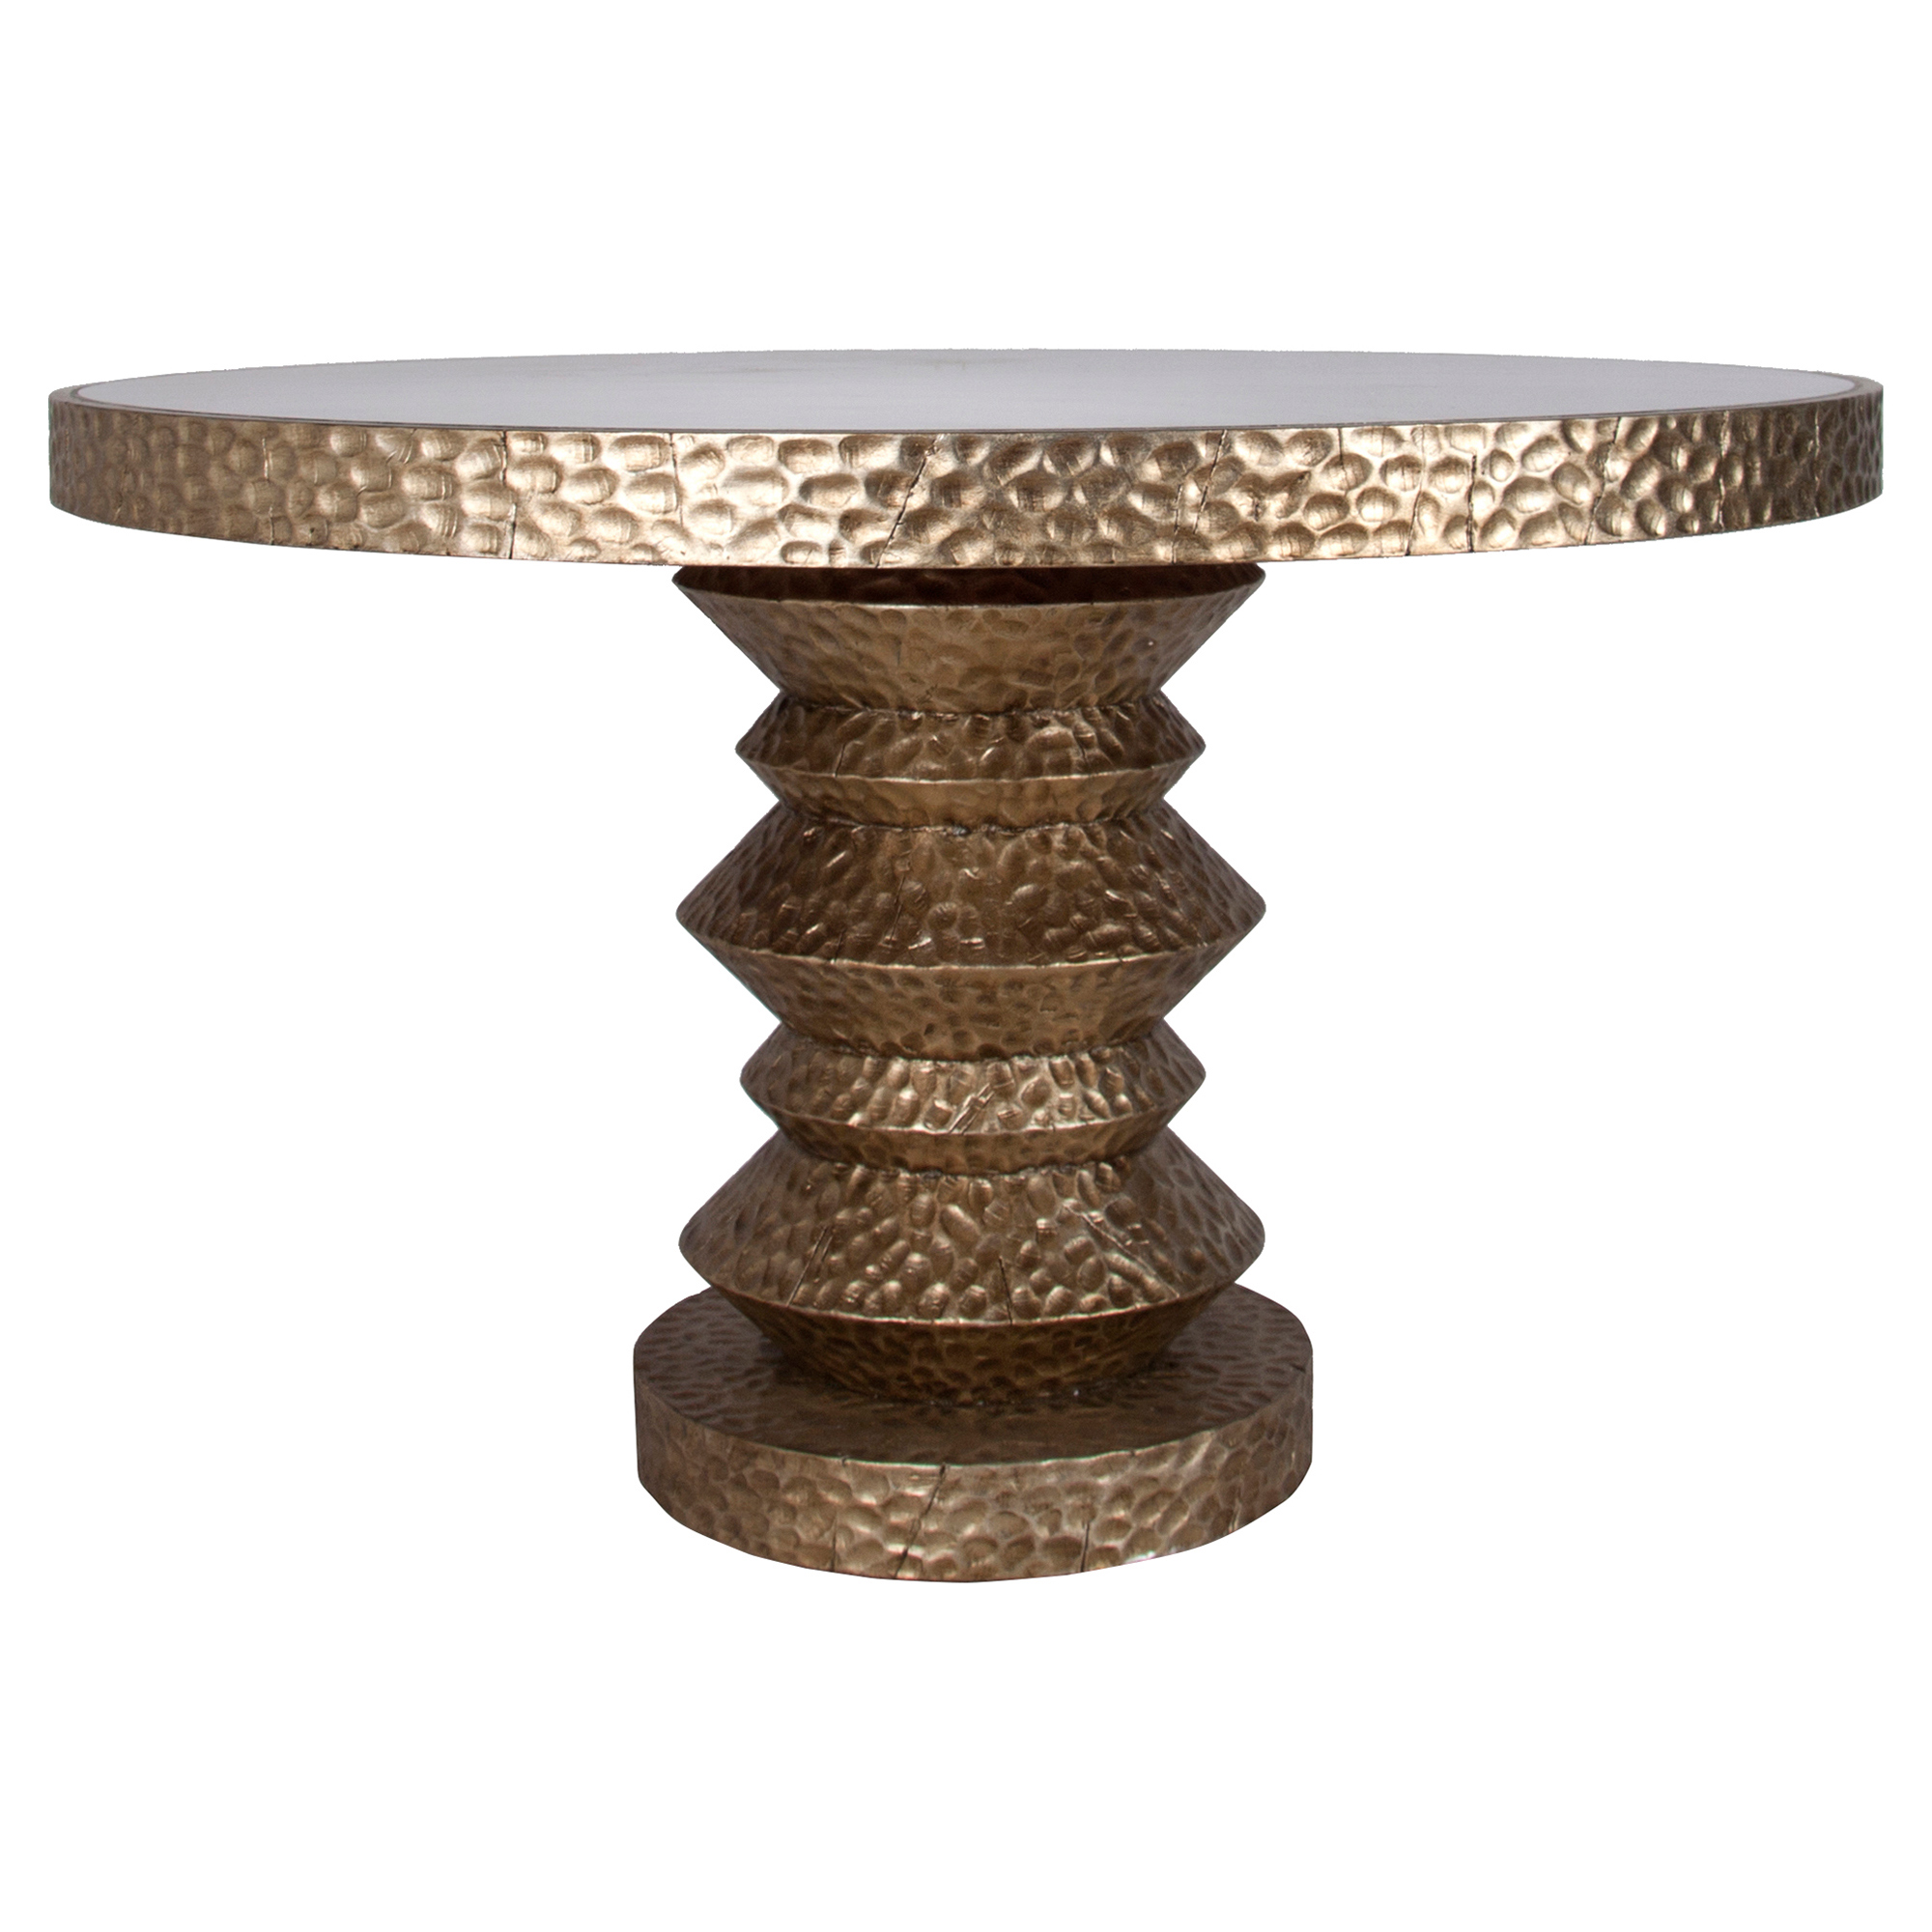 Bimini Global Antique Silver Round Dining Table